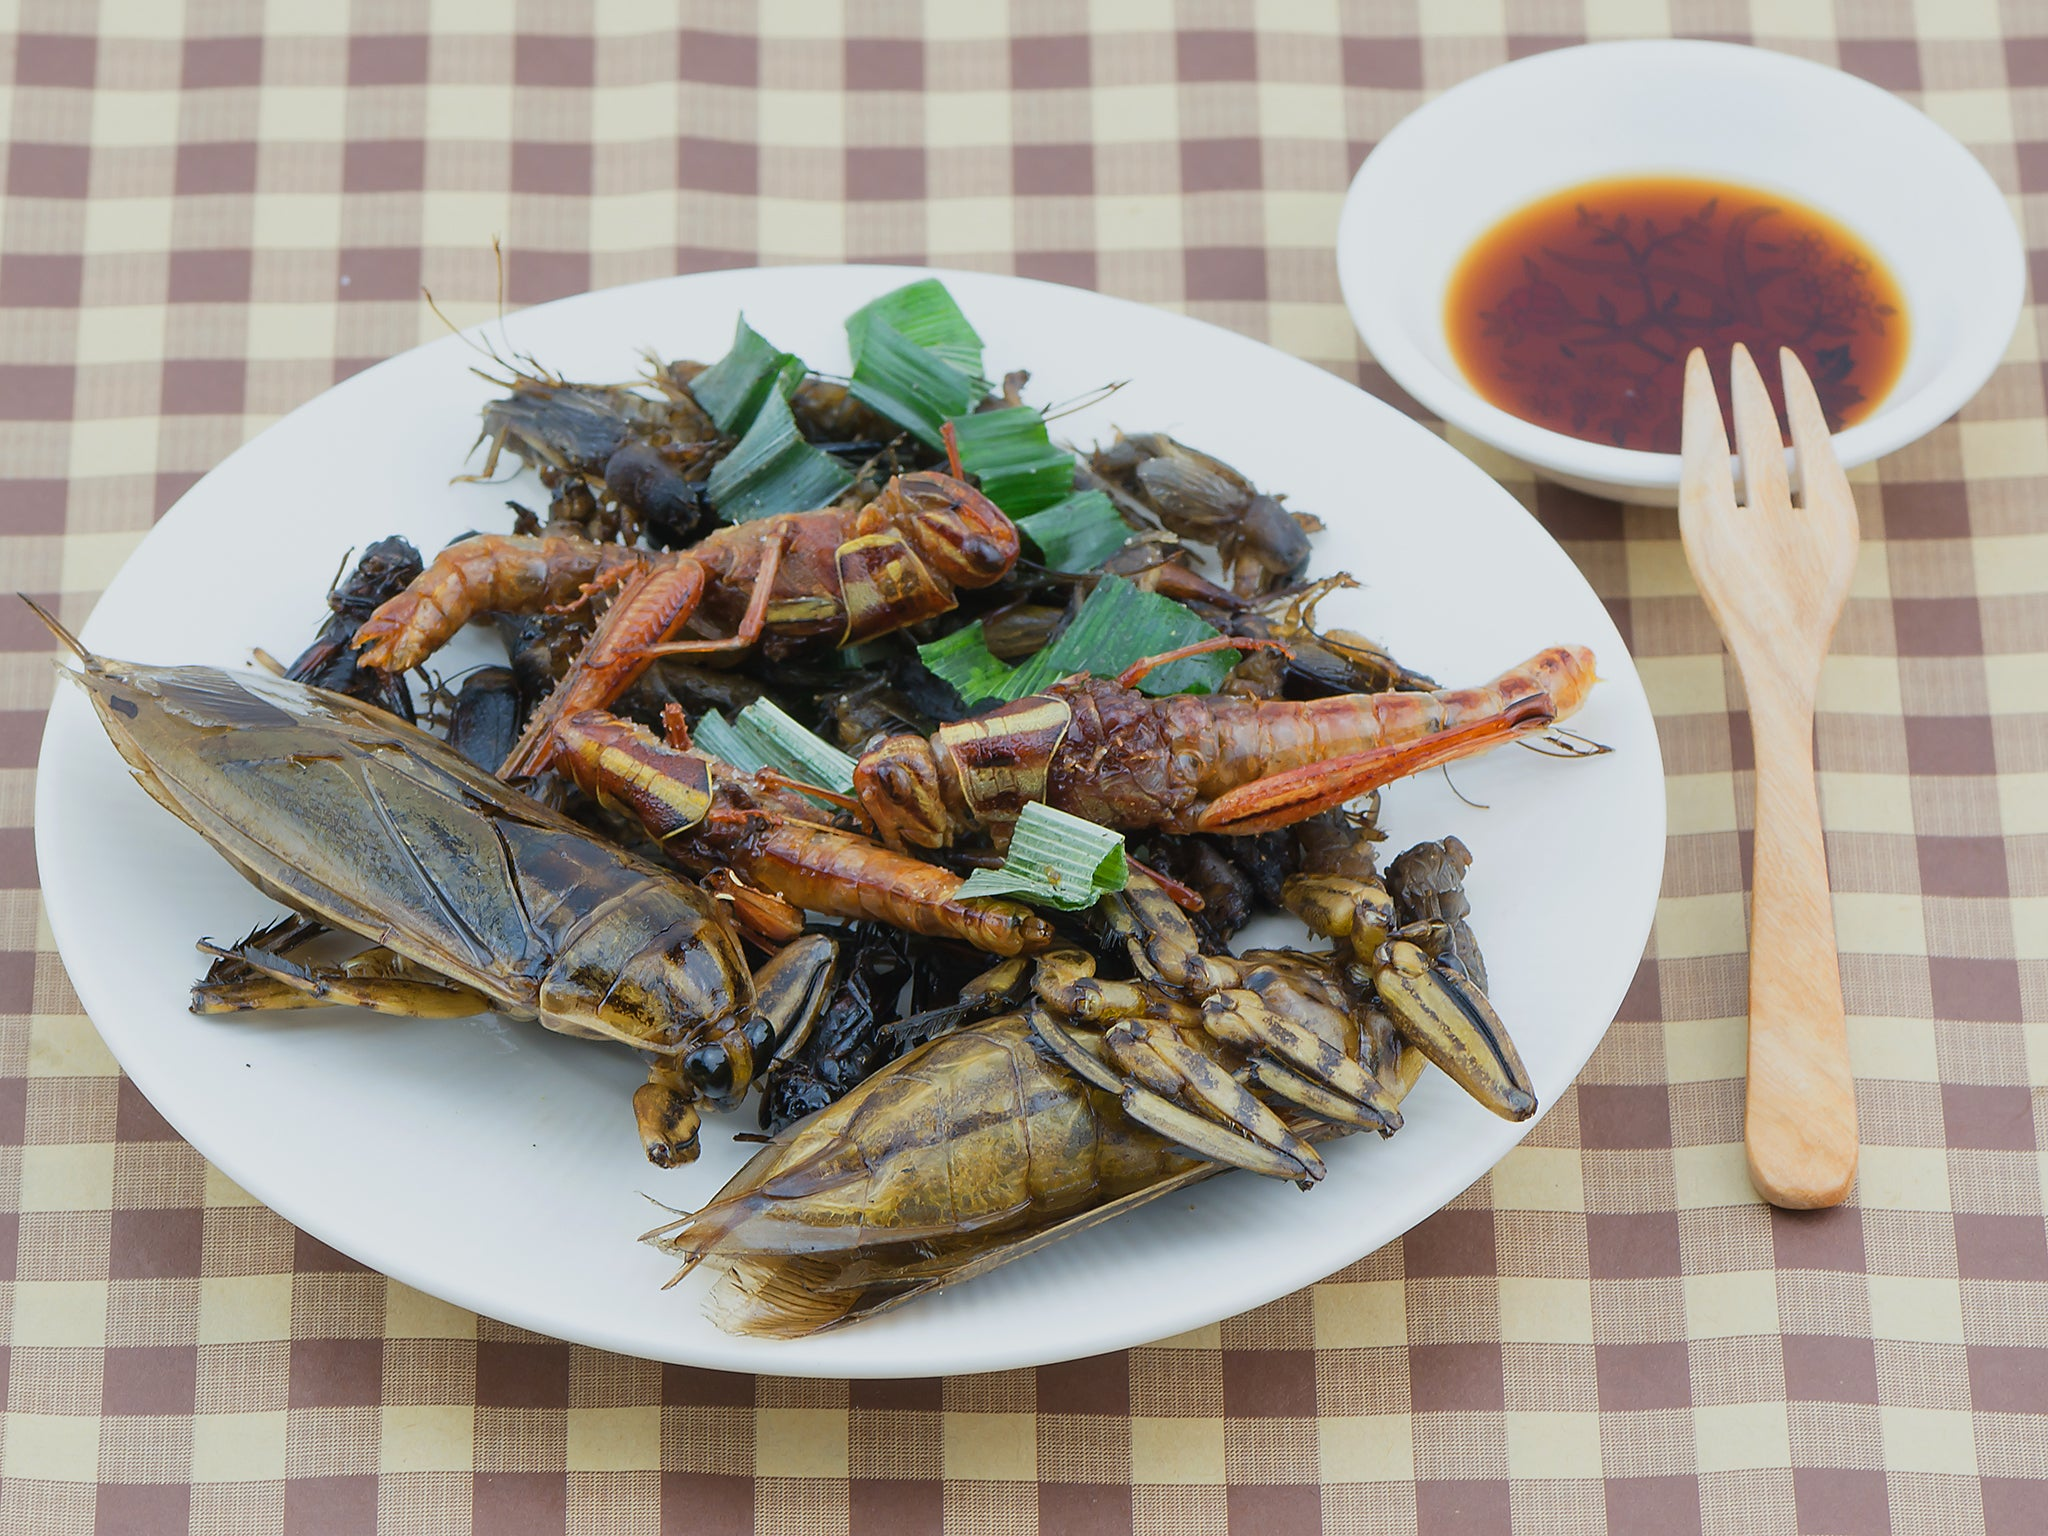 Belgian start up puts crickets on the menu | The Independent